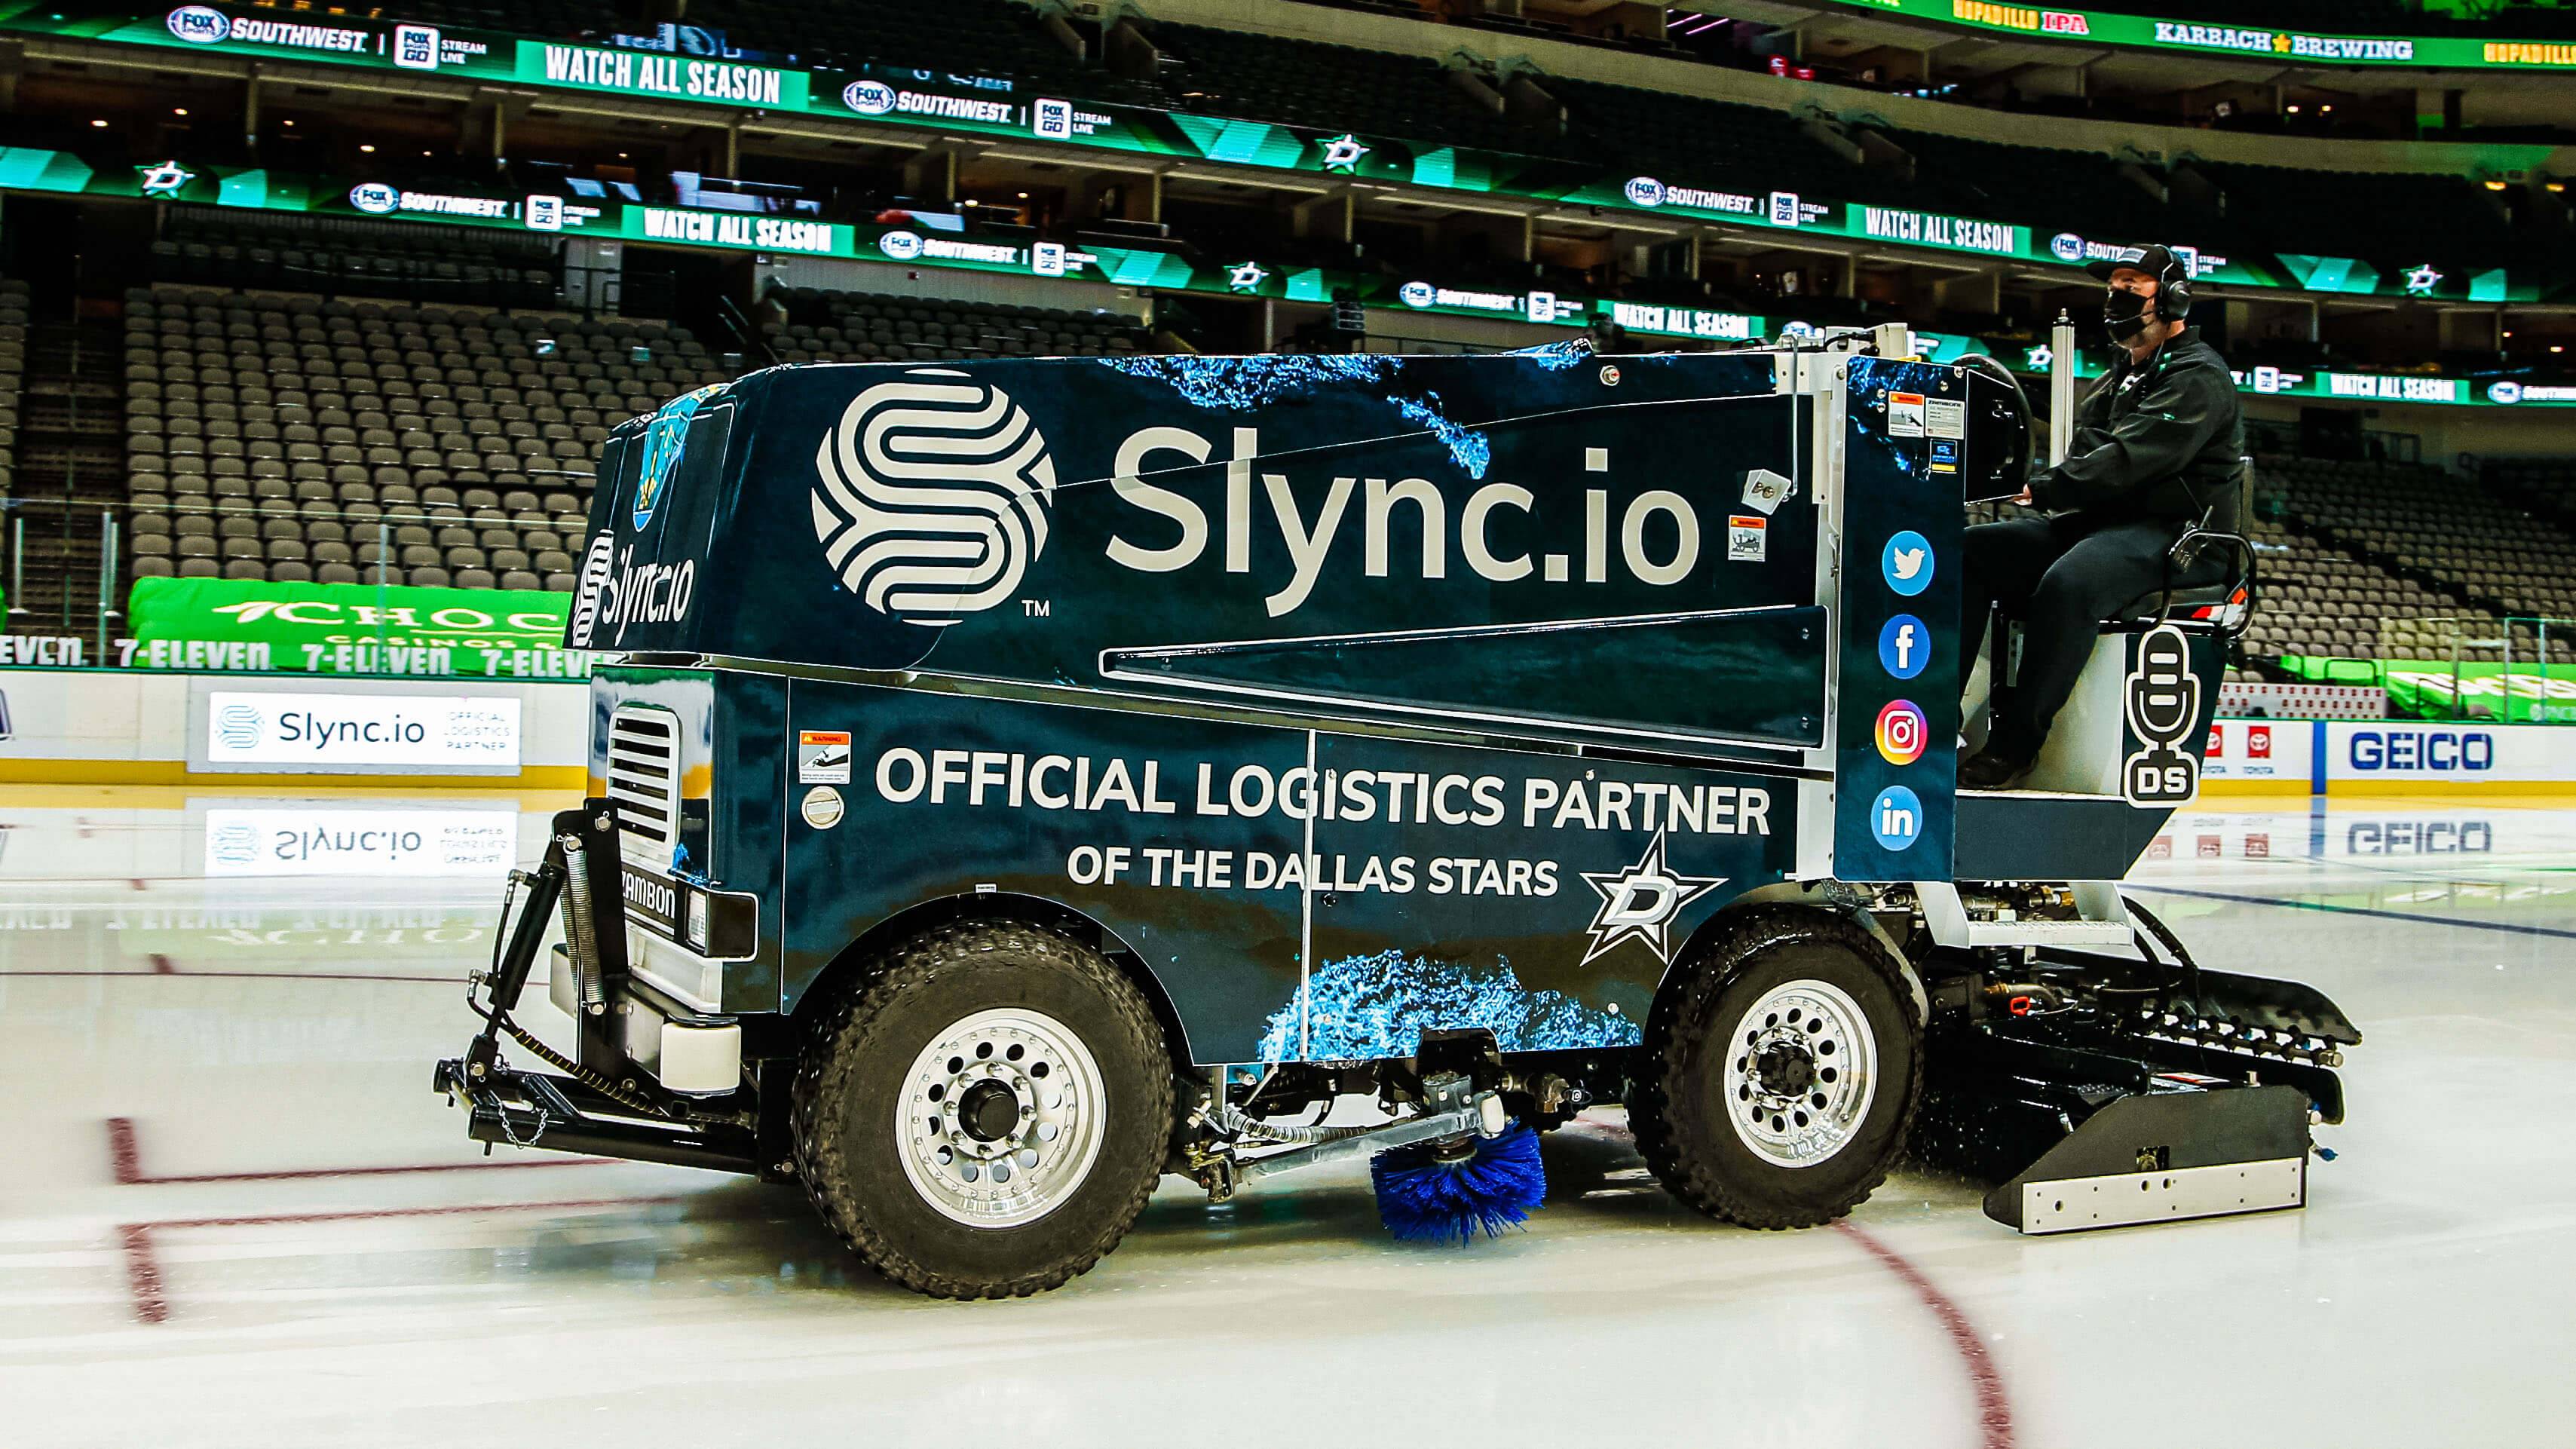 Slync.io is proud to be the official logistics partner of the Dallas Stars. The Slync zamboni ensures smooth skating for every game at the American Airlines Center, win or lose.